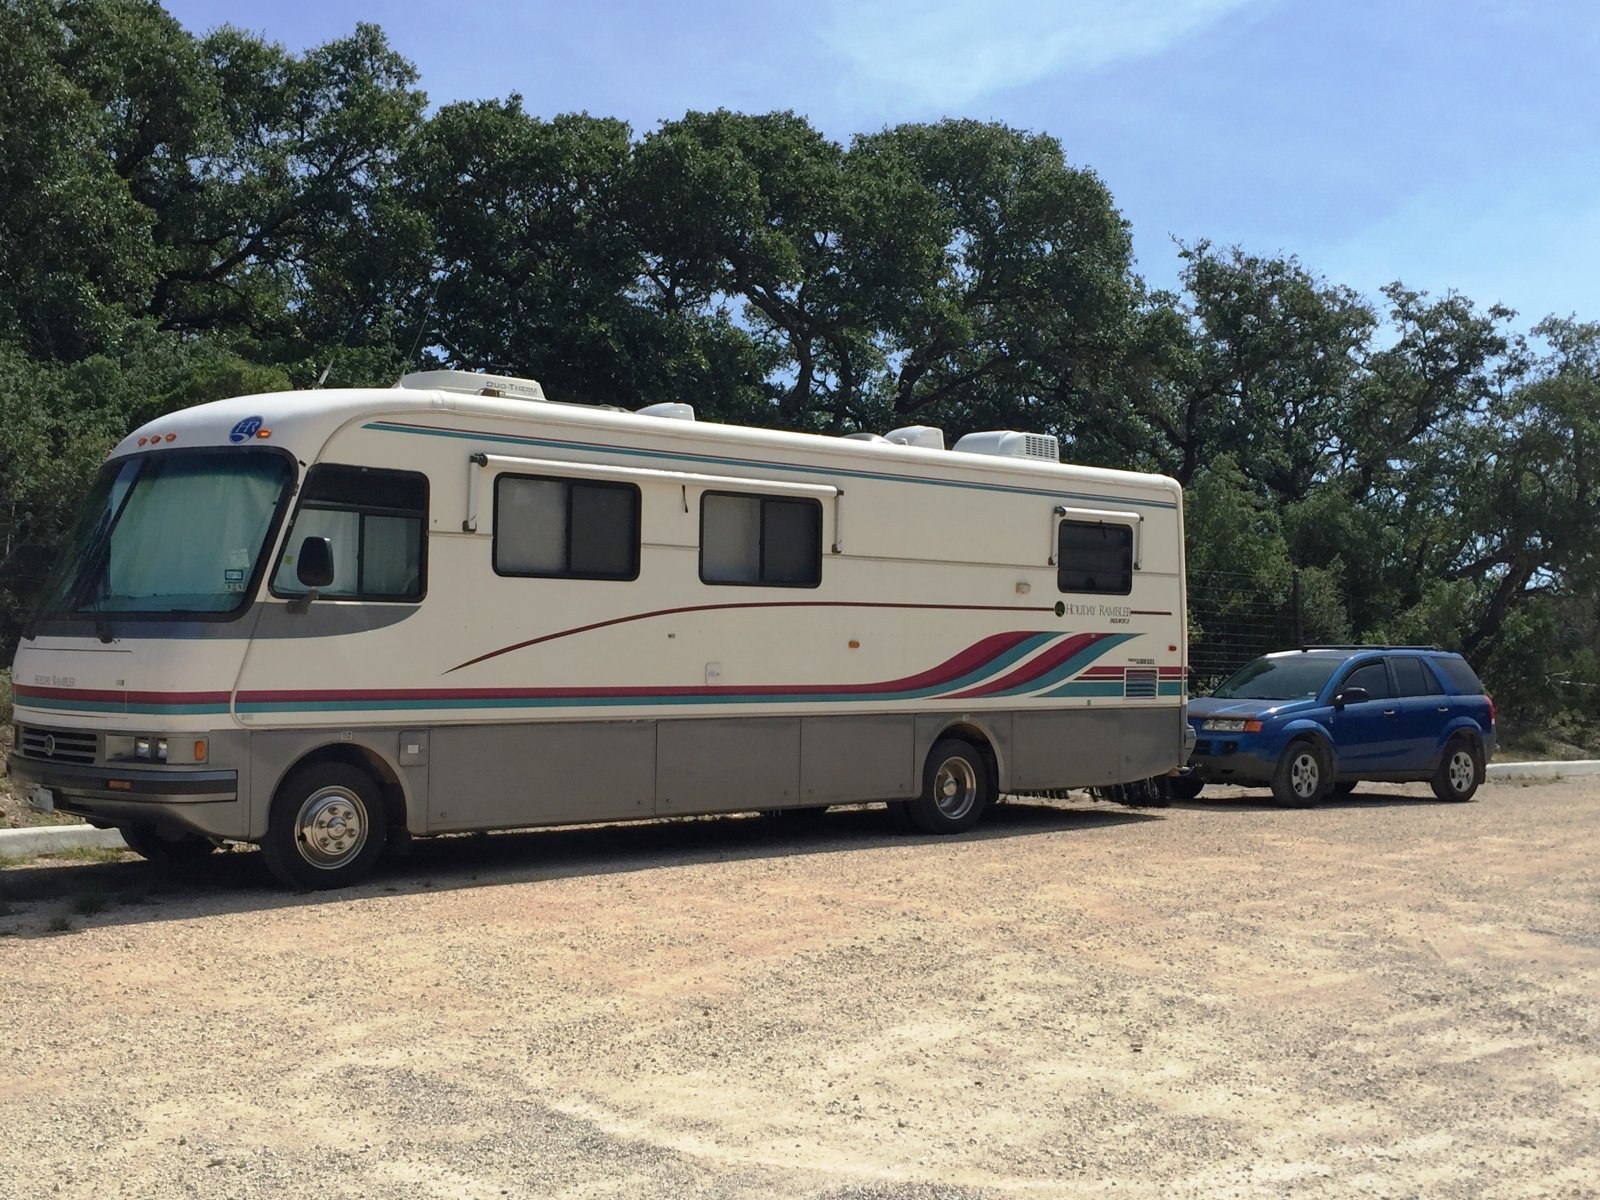 The Advantages Of A Slightly Off-Level RV Site